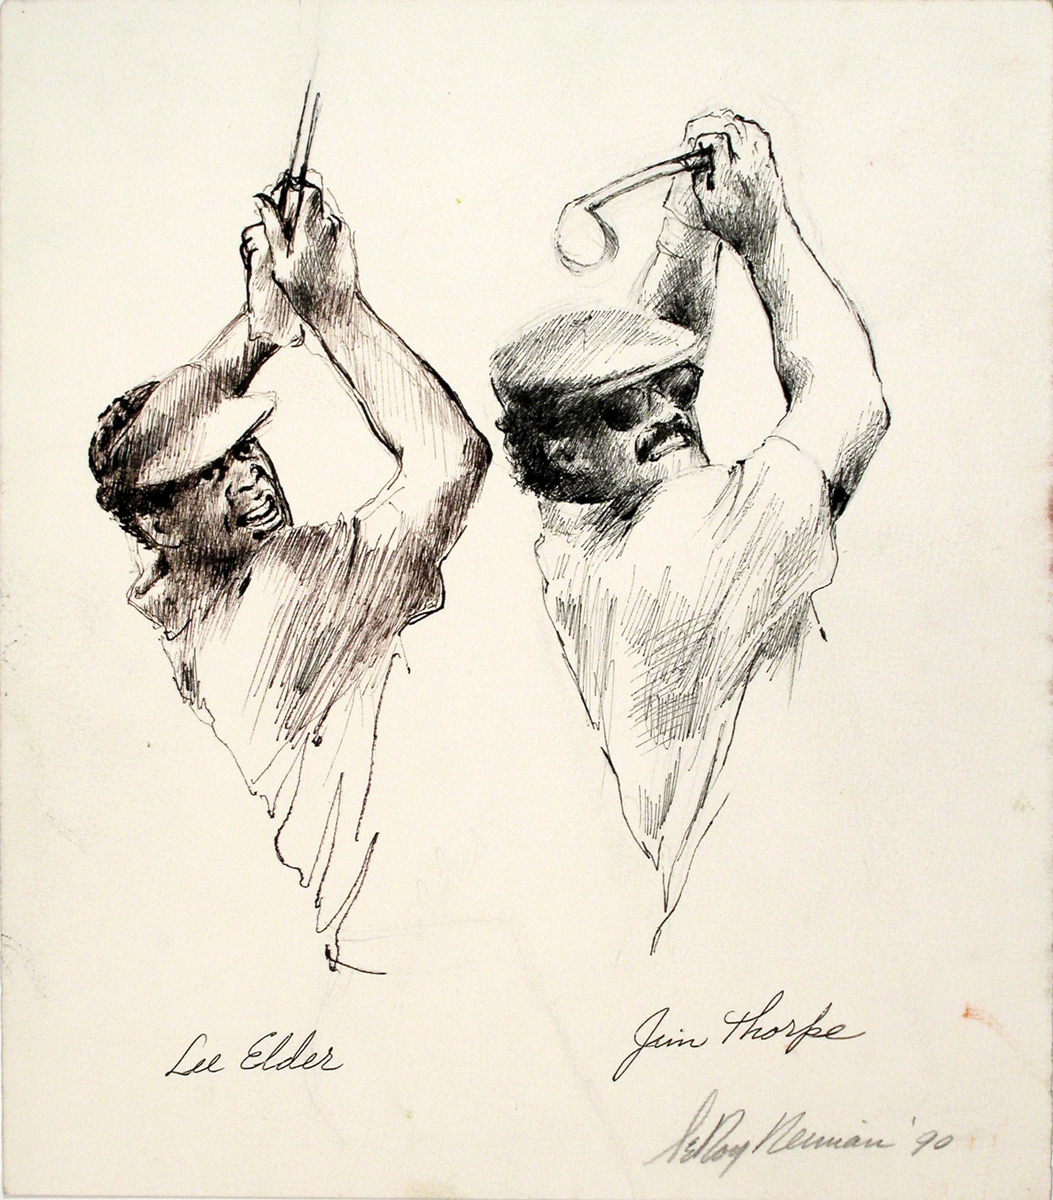 Lee Elder and Jim Thorpe, Ink on Paper, 13.25 X 11.5 in, 1990